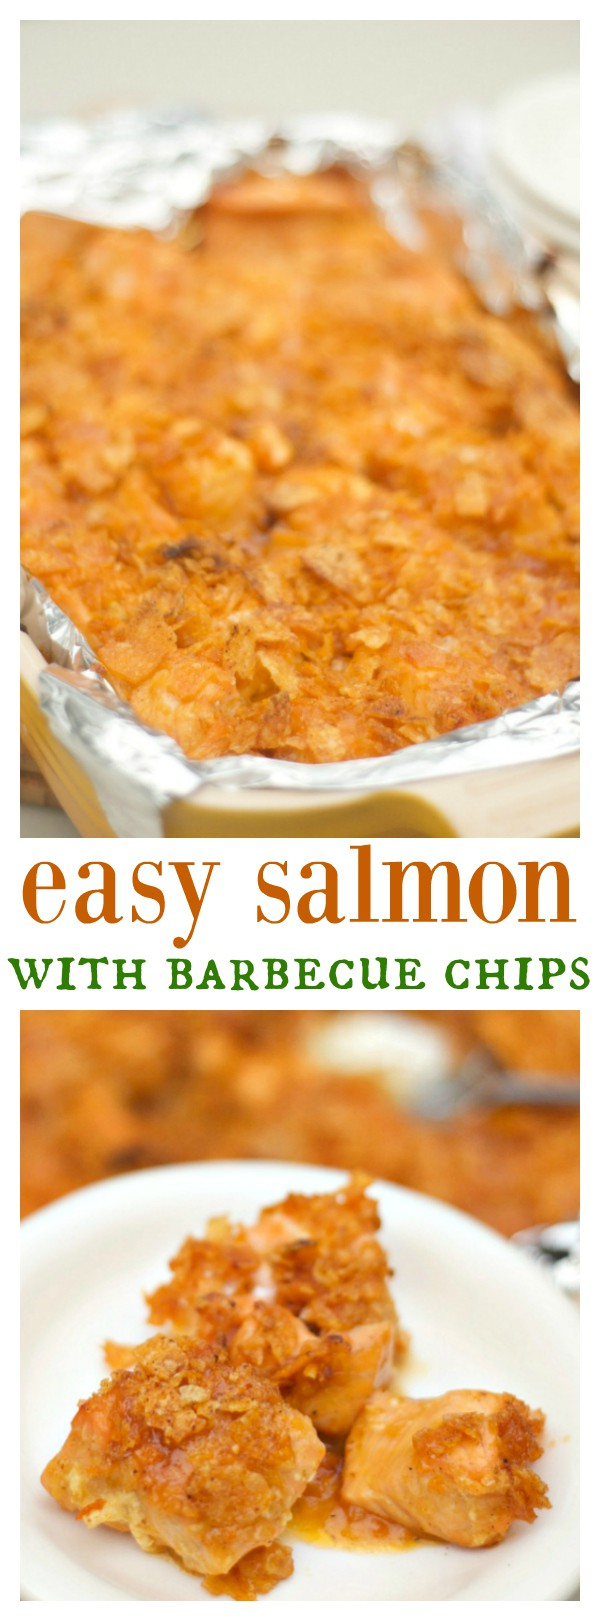 Easy Salmon with Barbecue Chips that even kids love!